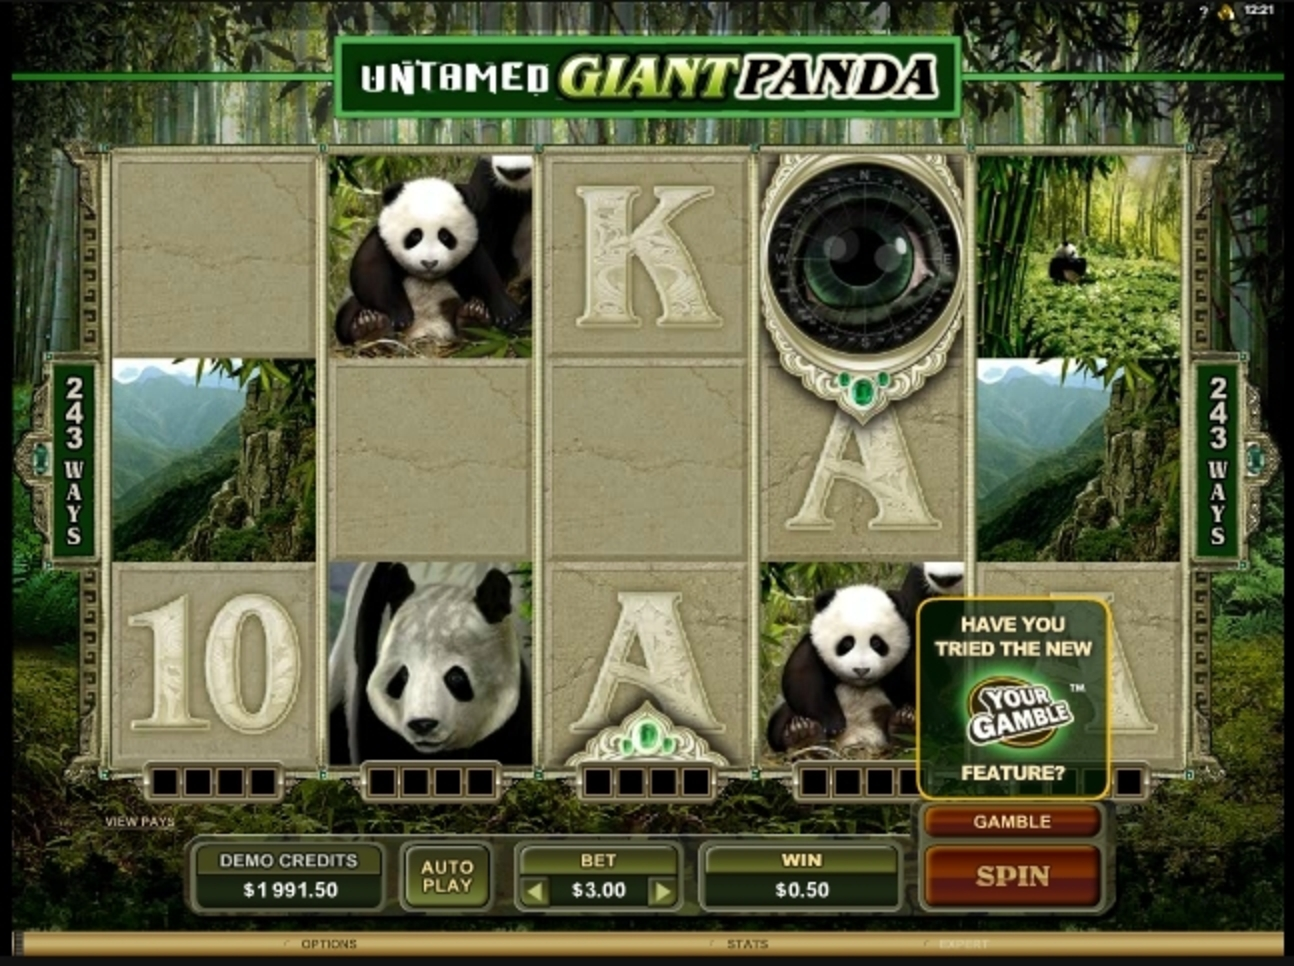 Win Money in Untamed Giant Panda Free Slot Game by Microgaming